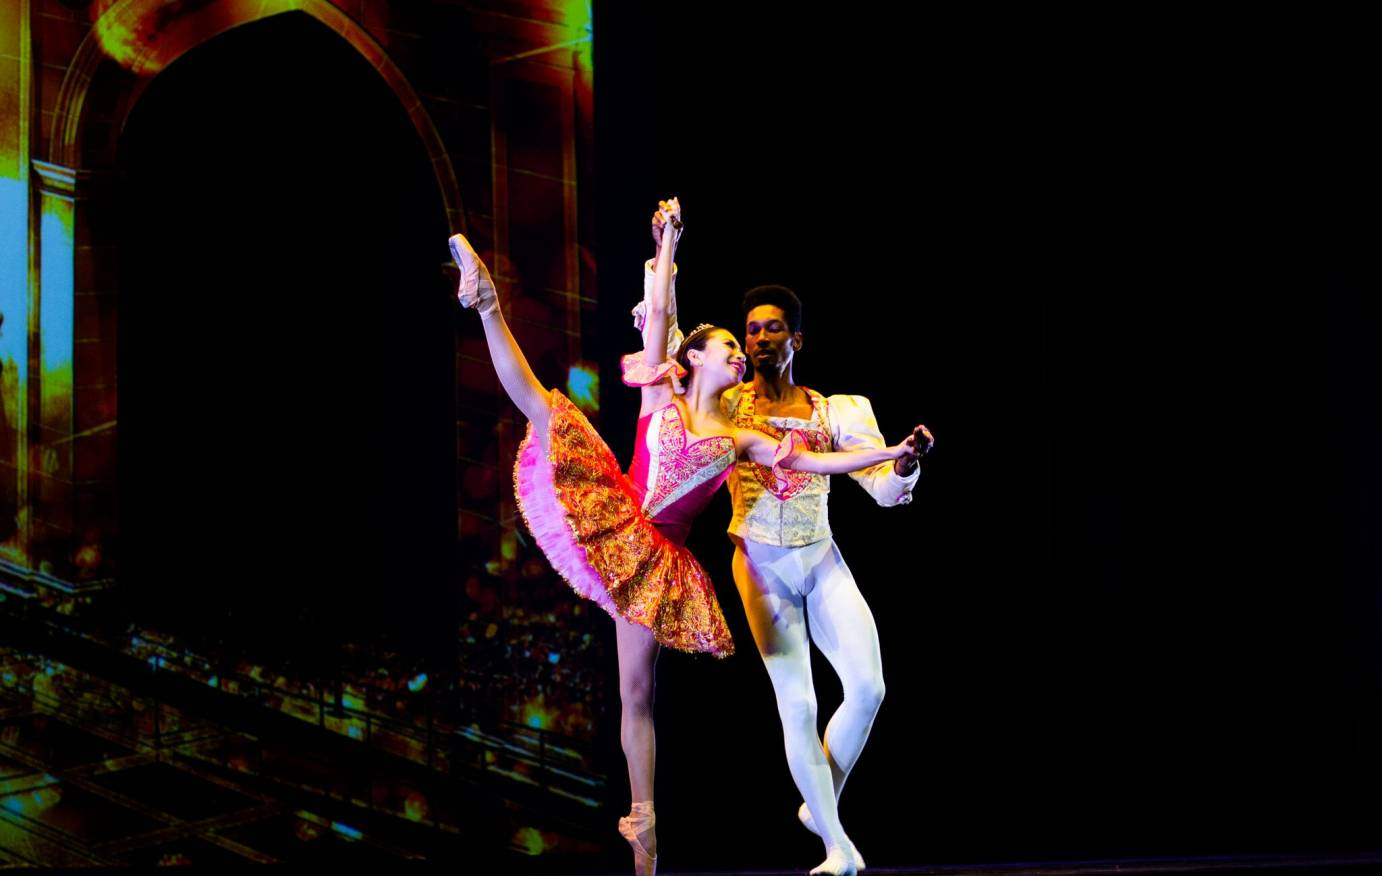 Expert ballet couple in candy colored costumes